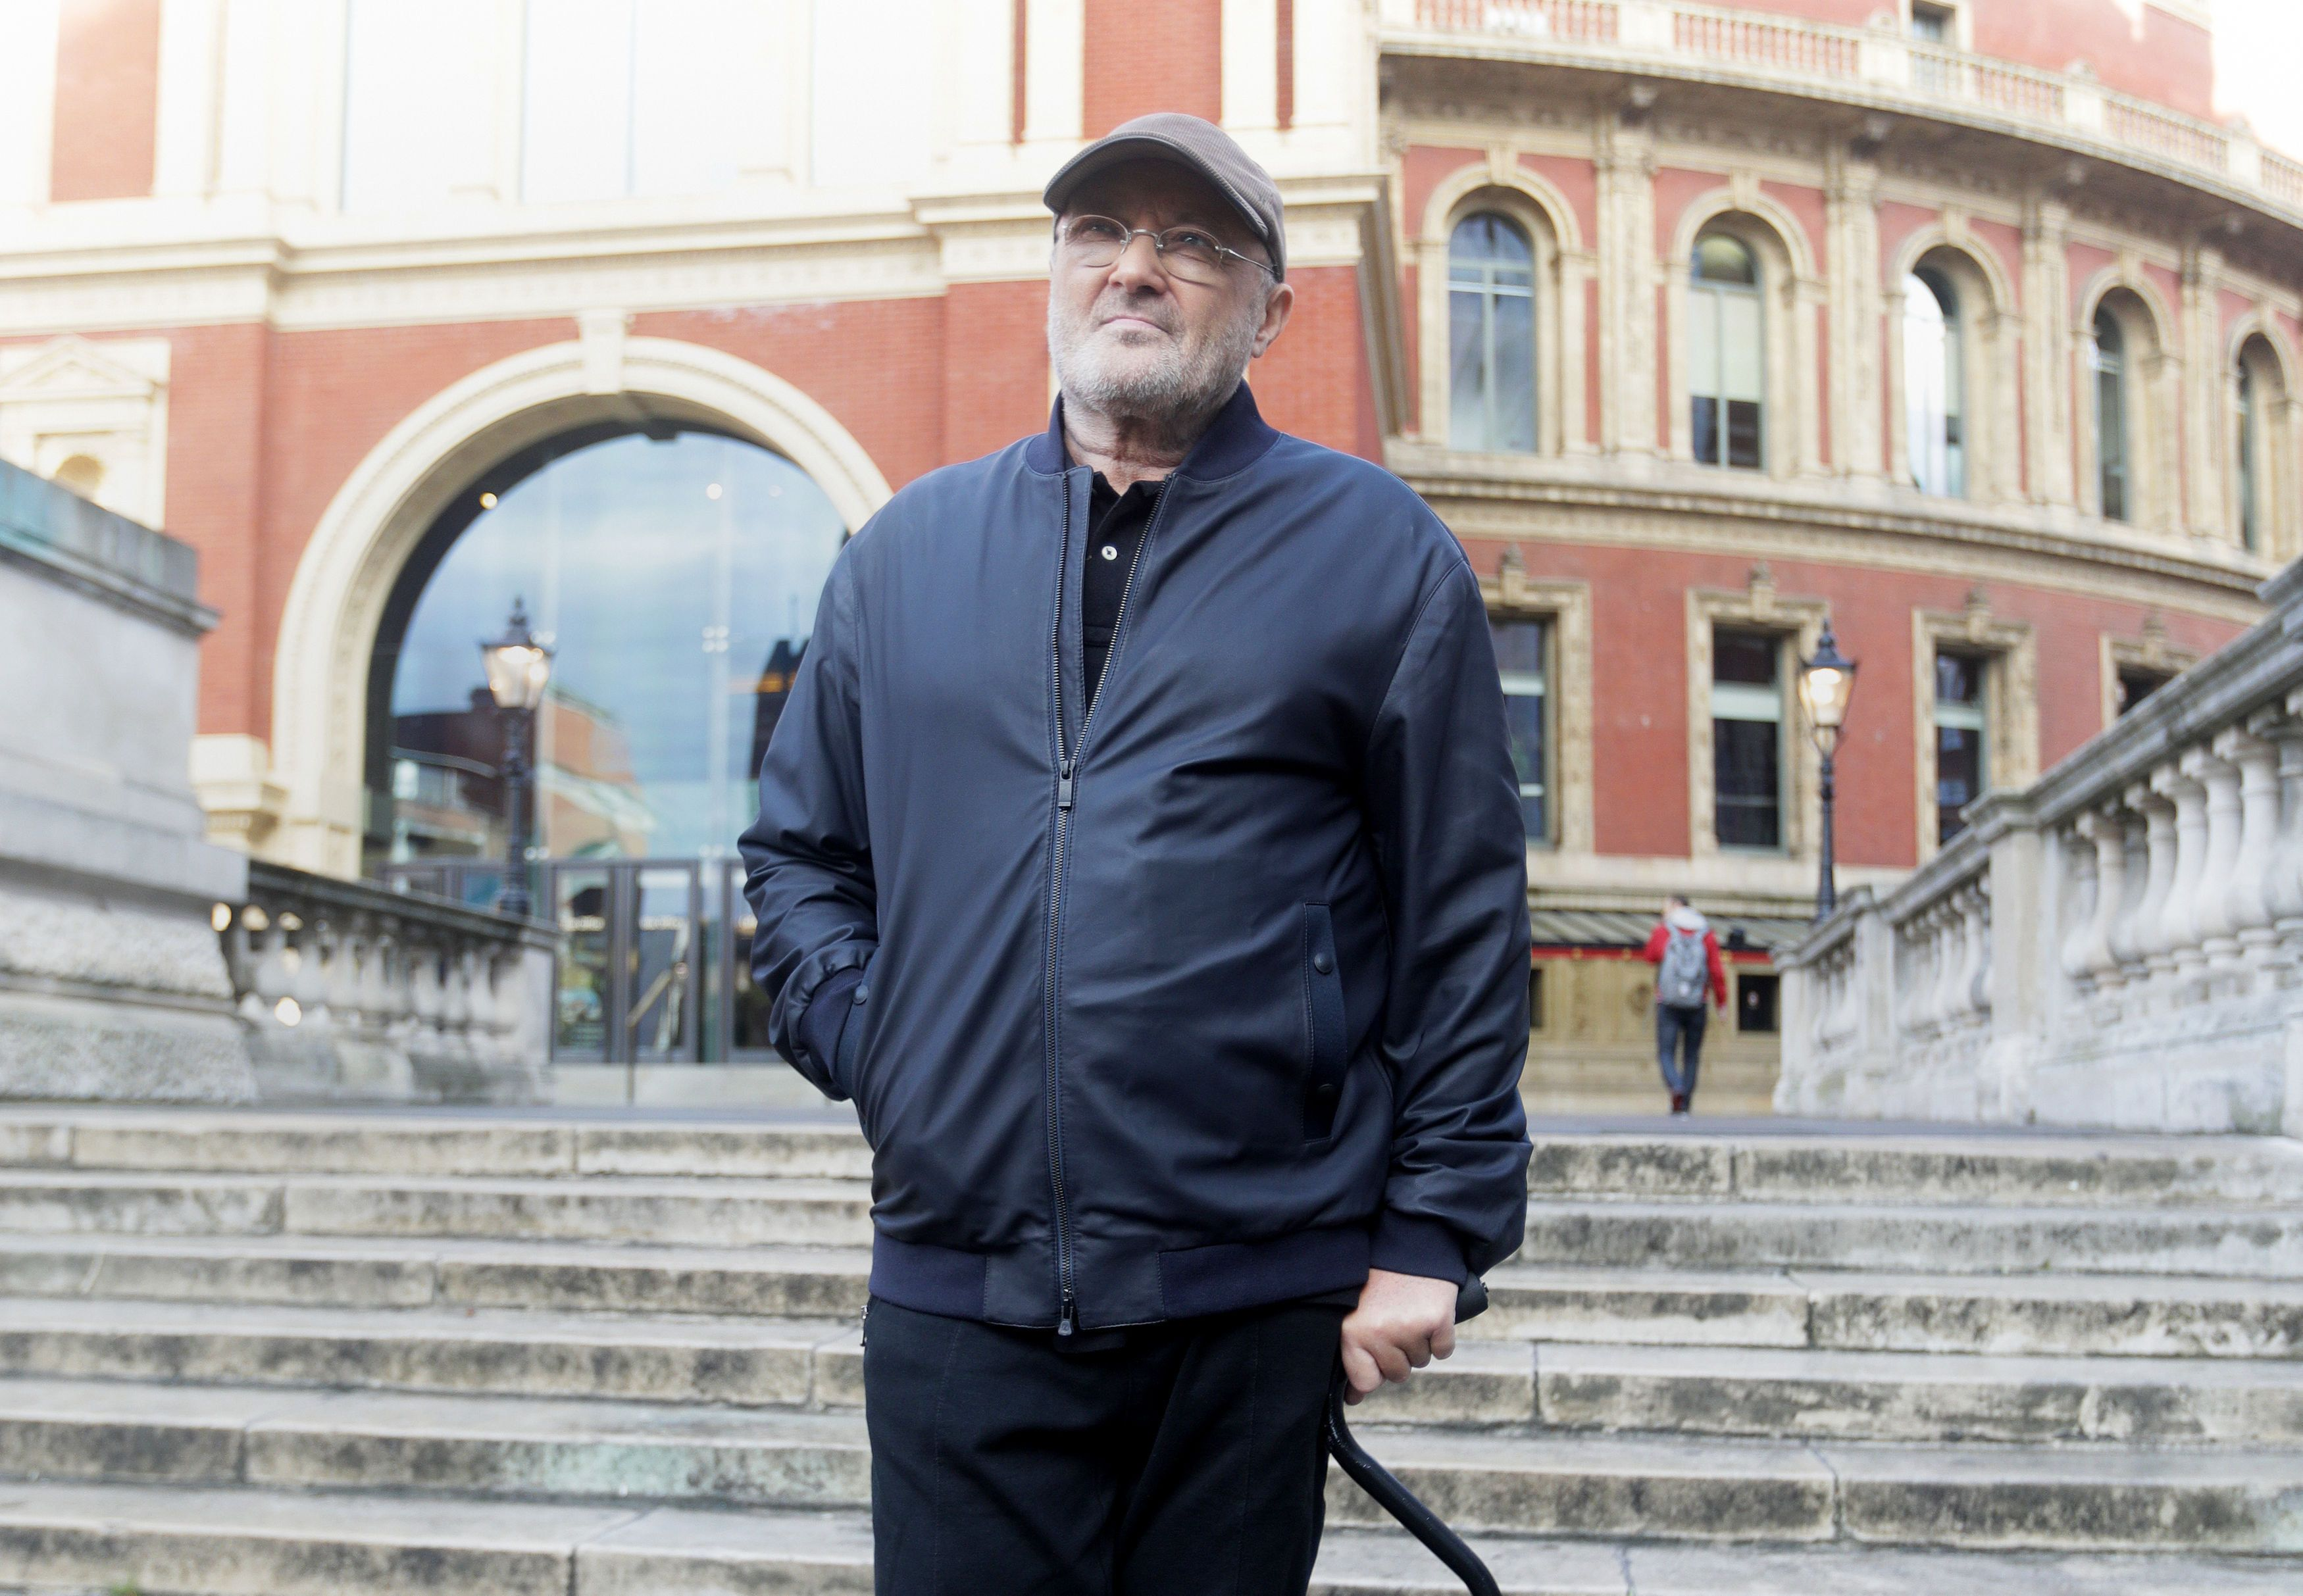 Phil has had to cancel his gigs at the Royal Albert Hall, originally planned for tonight and